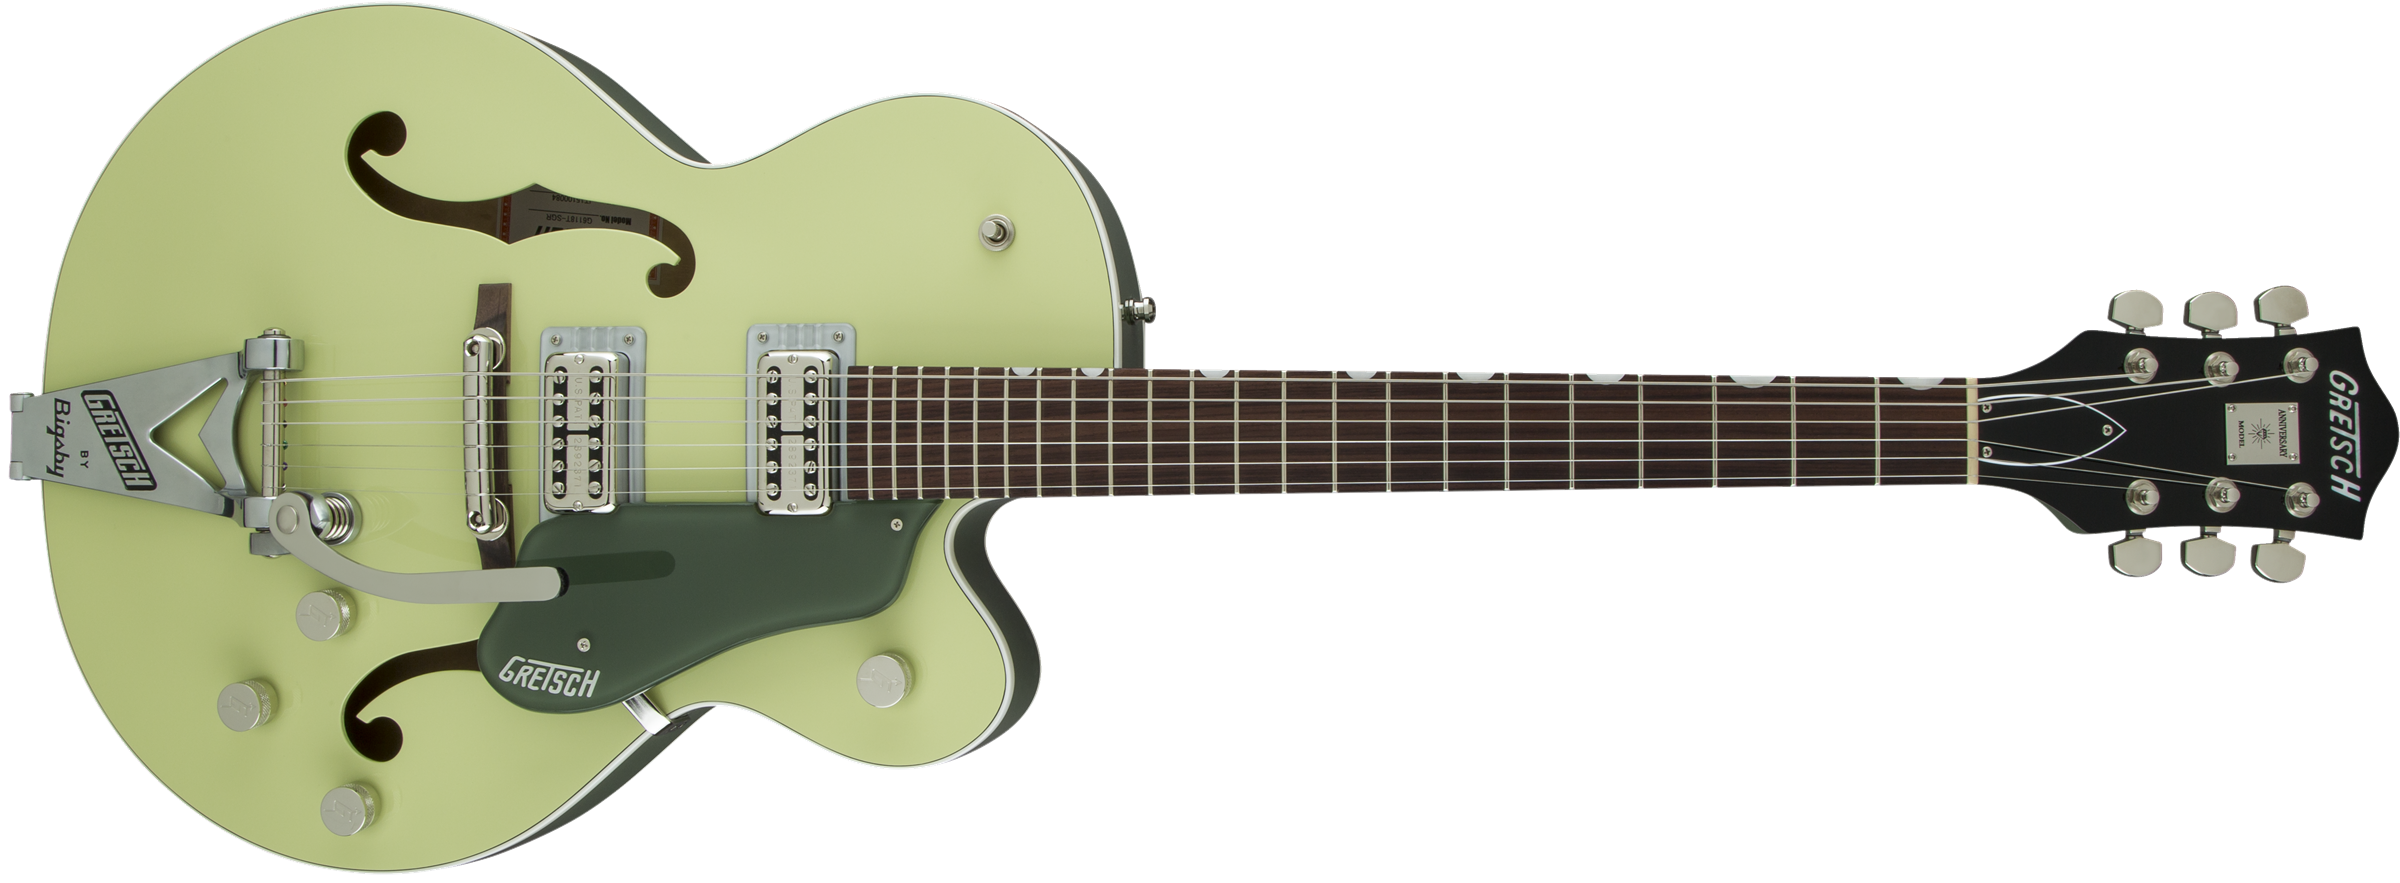 GRETSCH-G6118T-SGR-Players-Edition-Anniversary-with-String-Thru-Bigsby-FilterTron-Pickups-2-Tone-Smoke-Green-sku-571001217